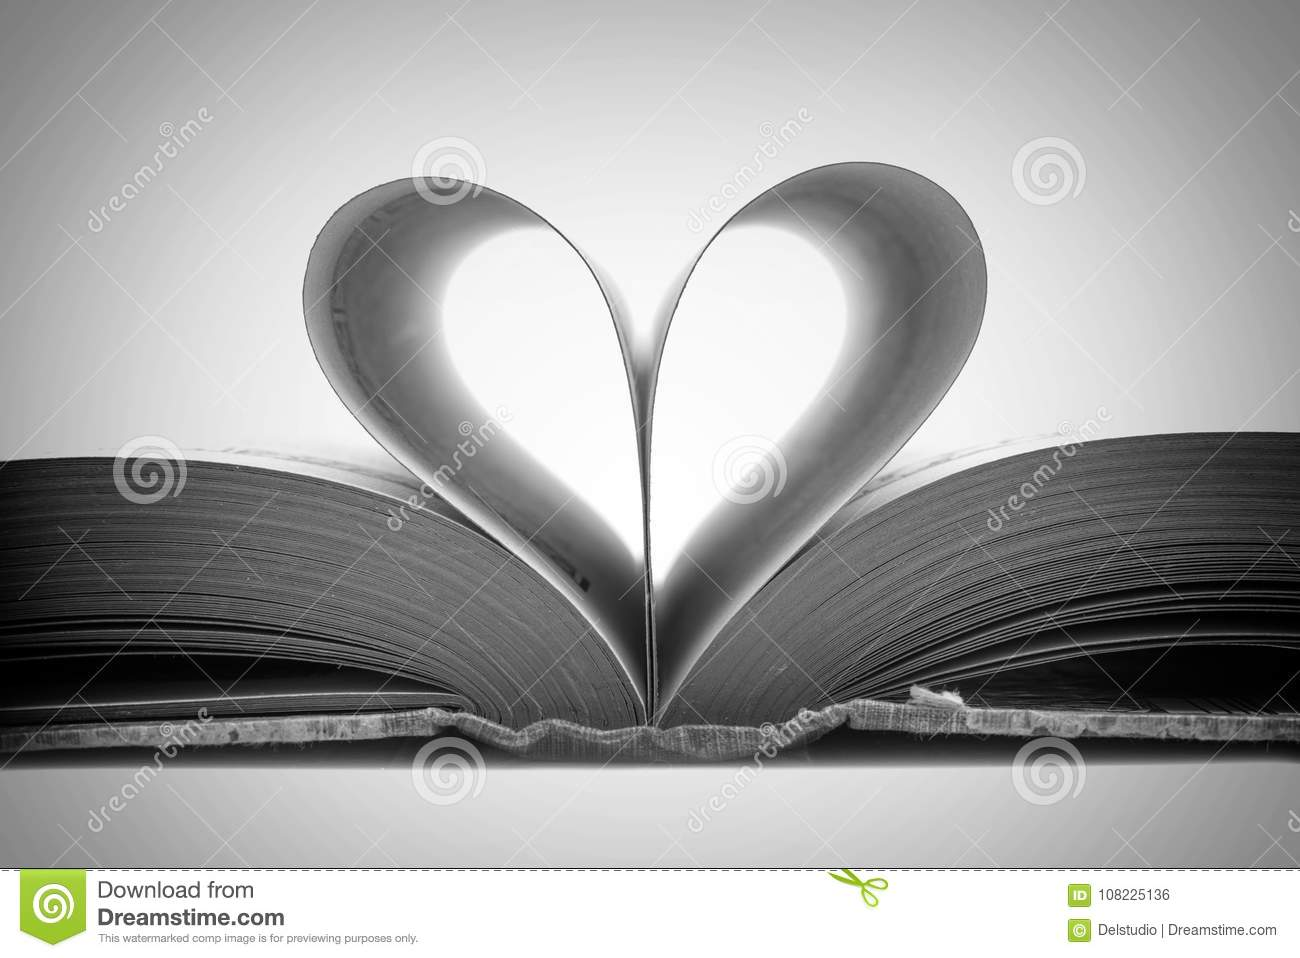 Book pages in the shape of a heart black and white stock photo